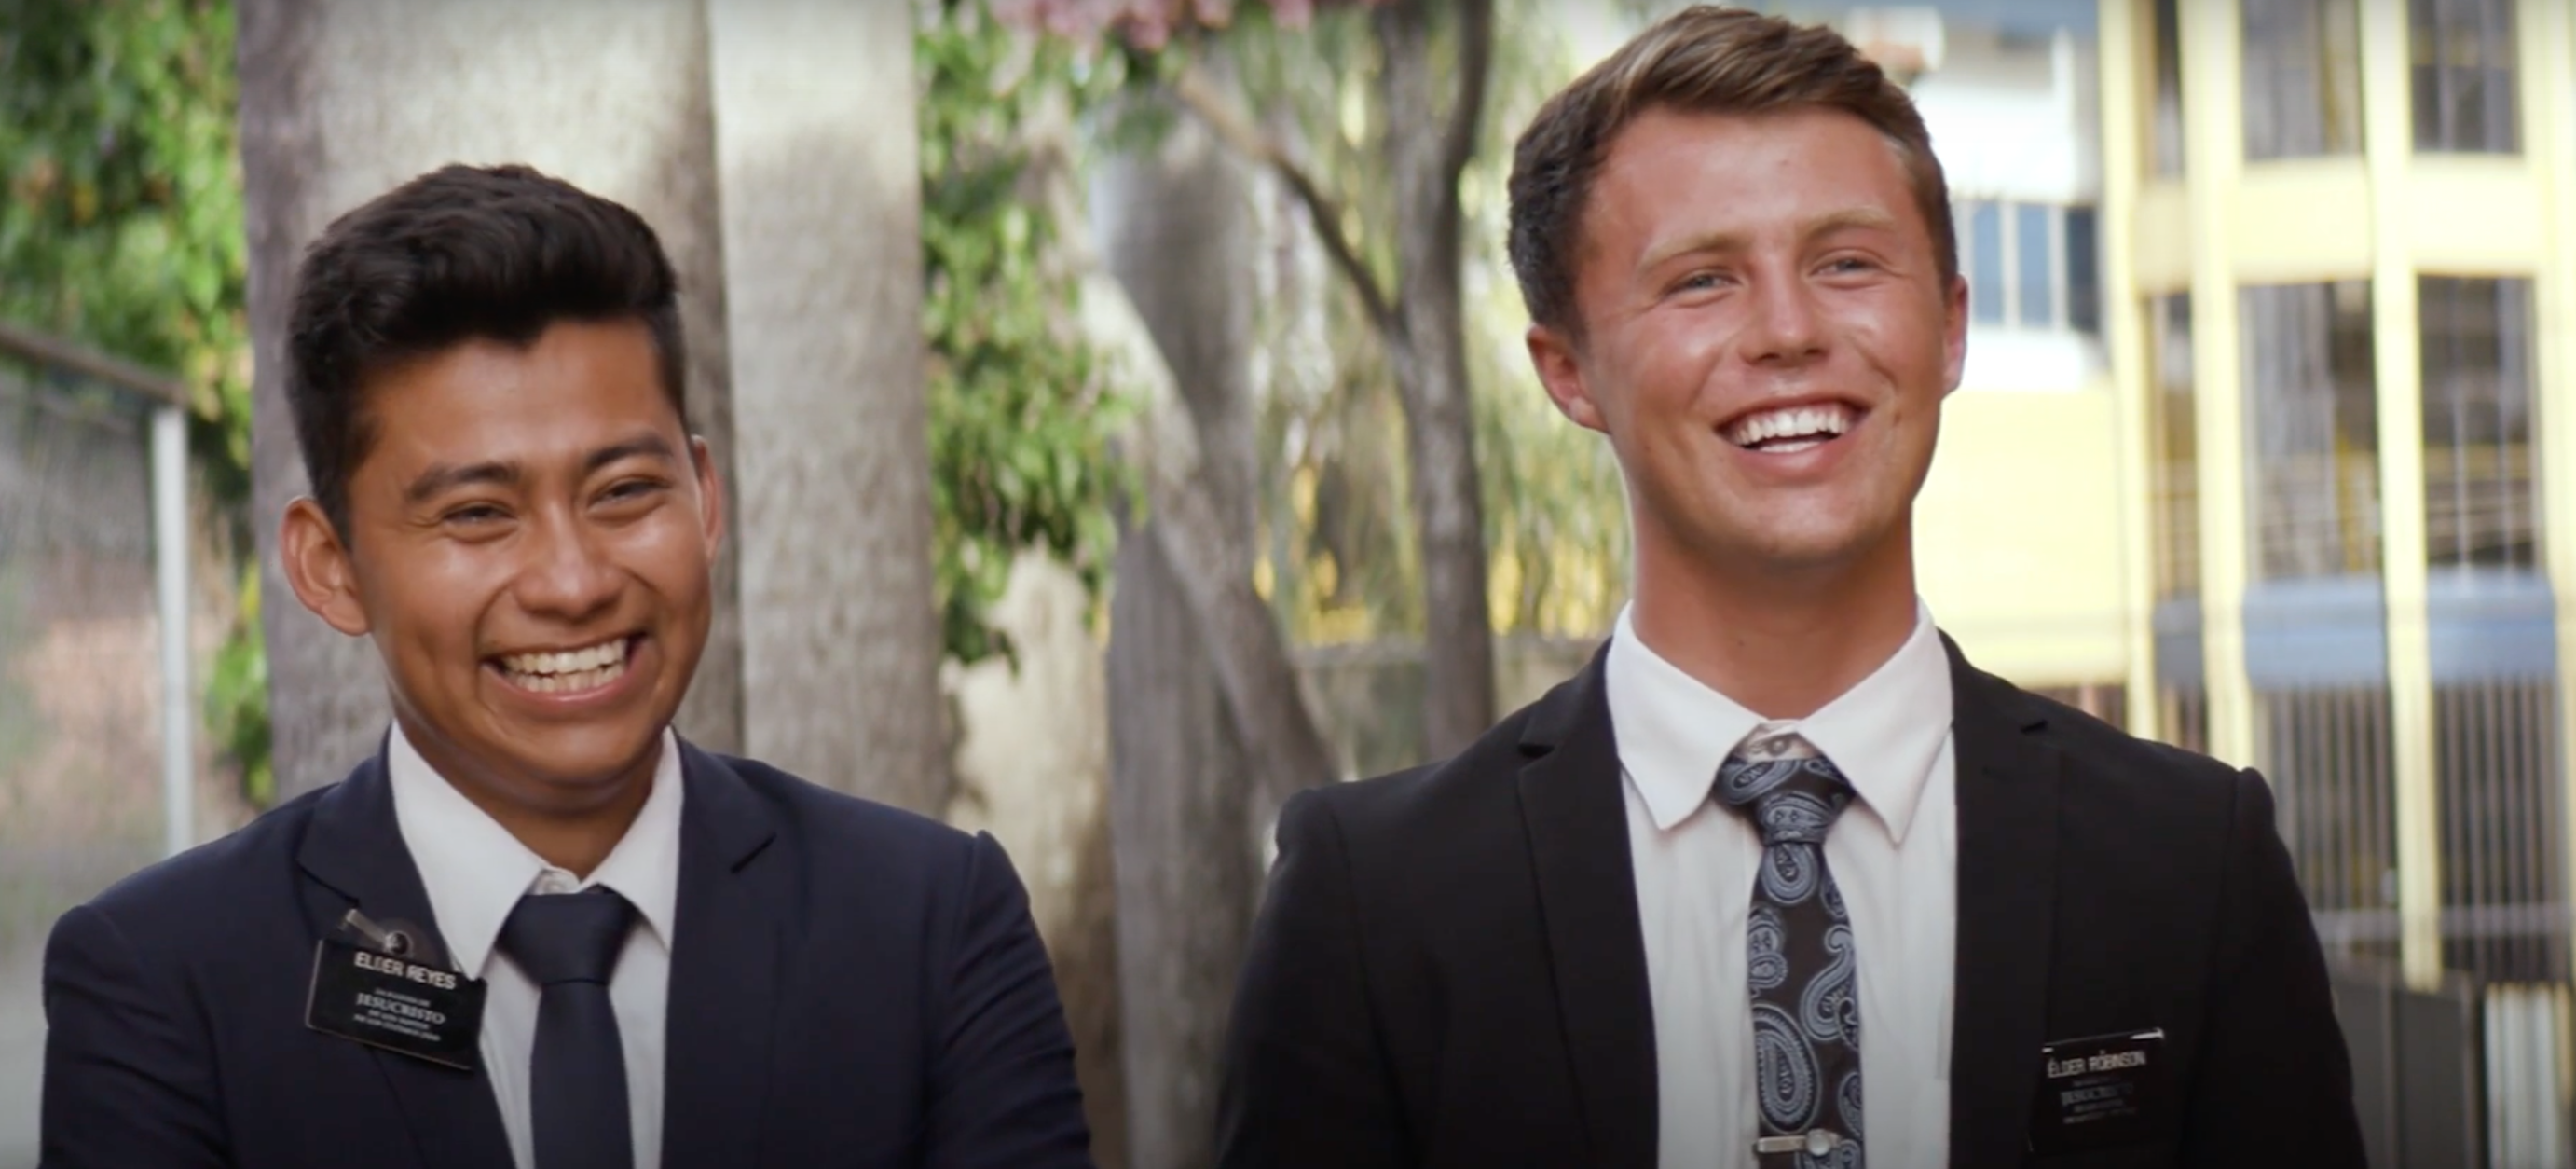 Elder Reyes and Elder Robinson speak about their experience meeting President Russell M. Nelson and hearing him speak in Paraguay.